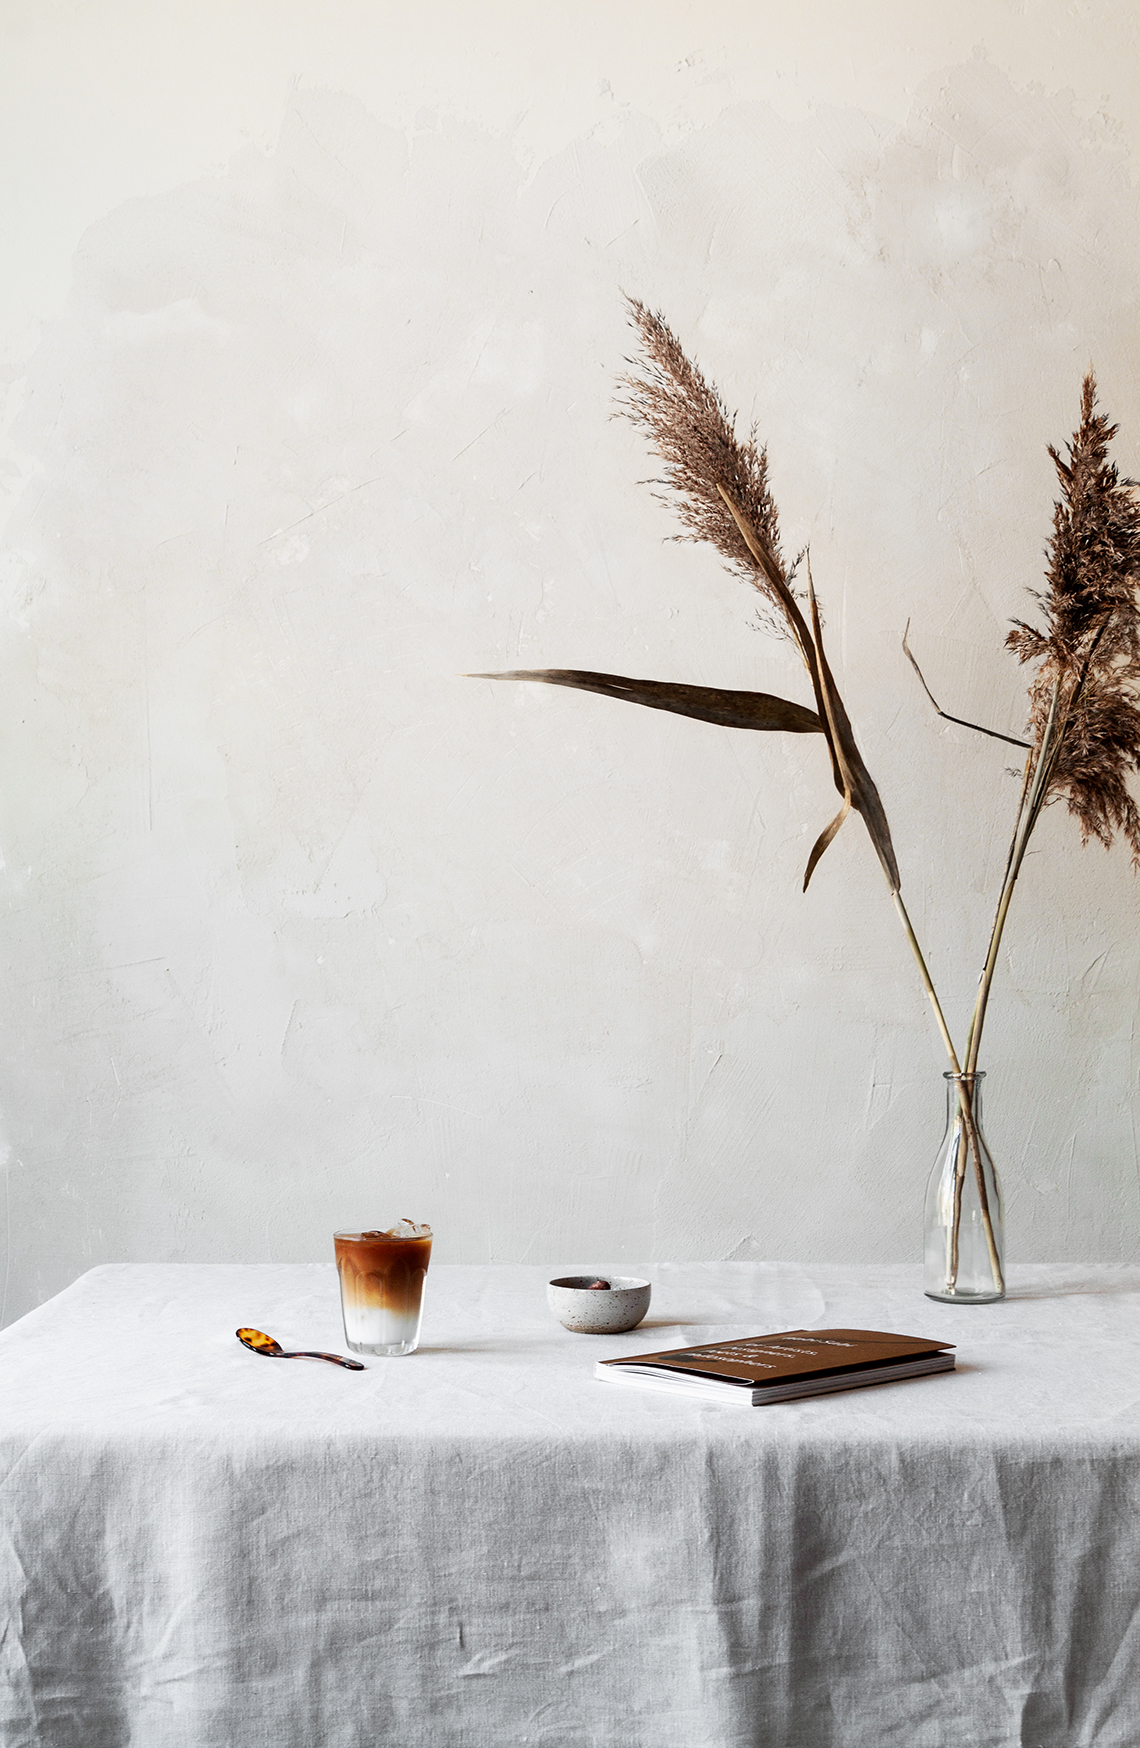 coffee setting with book and pampas grass